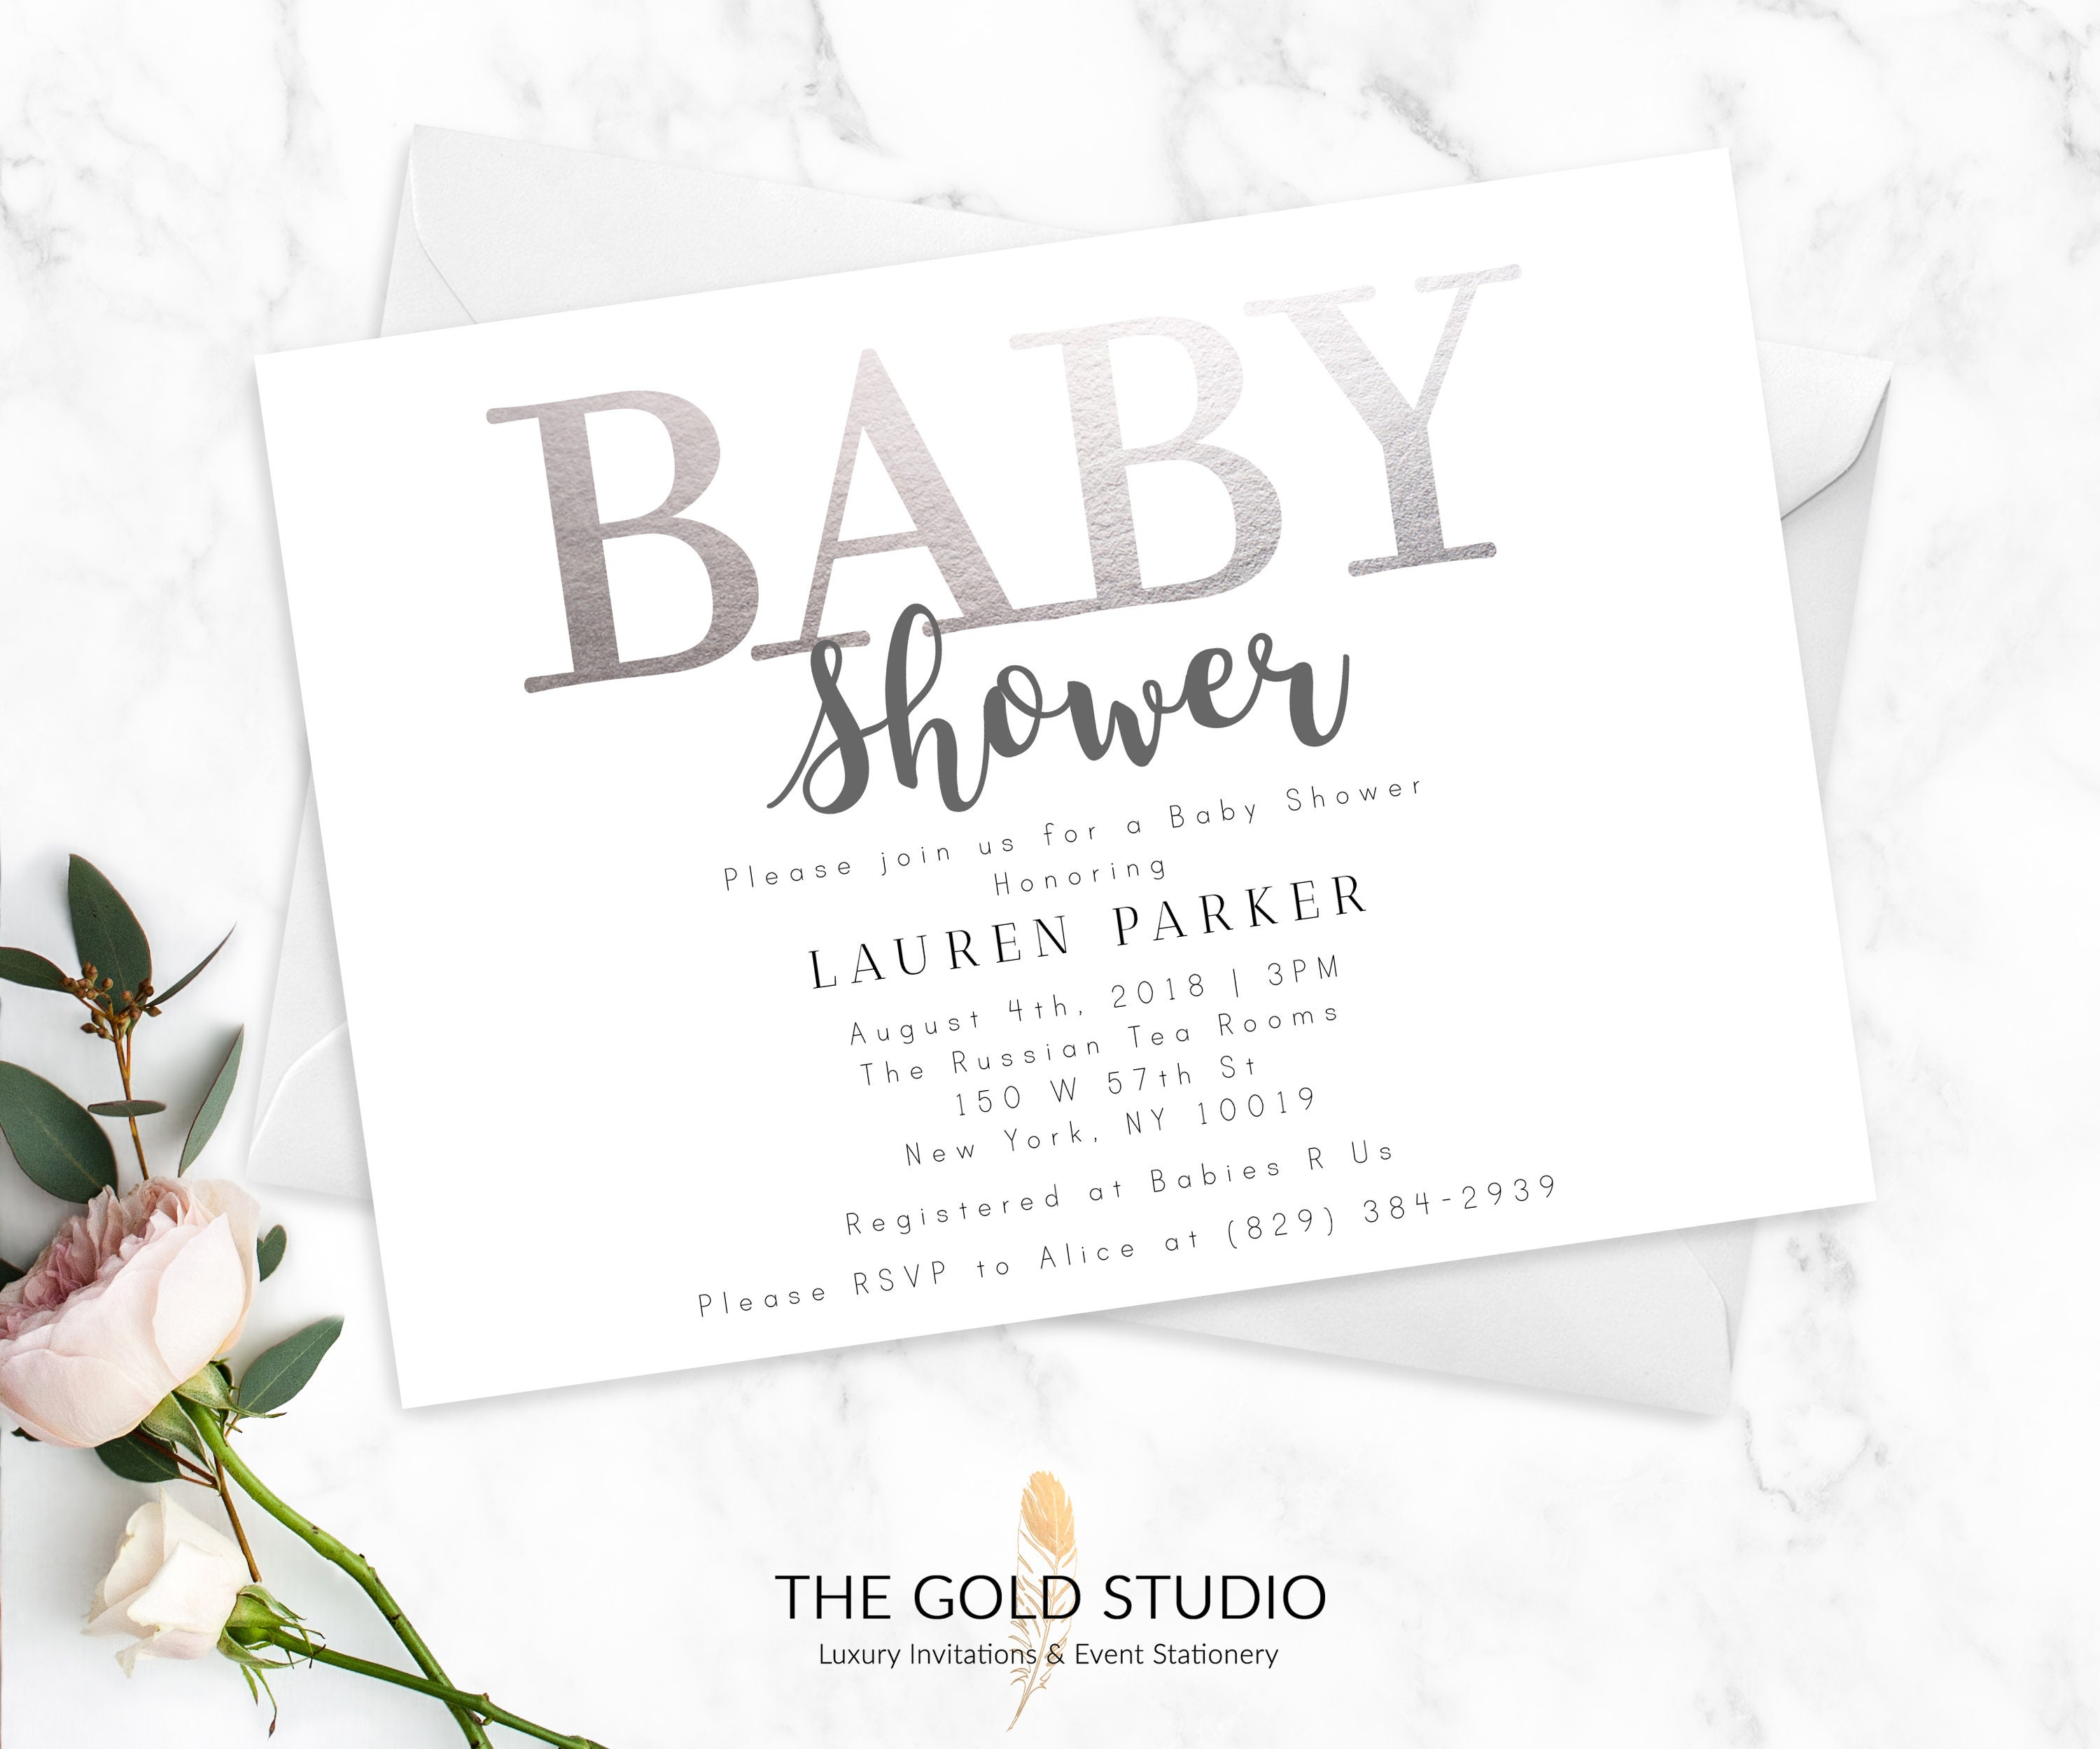 Baby shower invitations modern silver white printed invitations baby shower invitations modern silver white printed invitations elegant feminine baby shower invites gender neutral printed cards filmwisefo